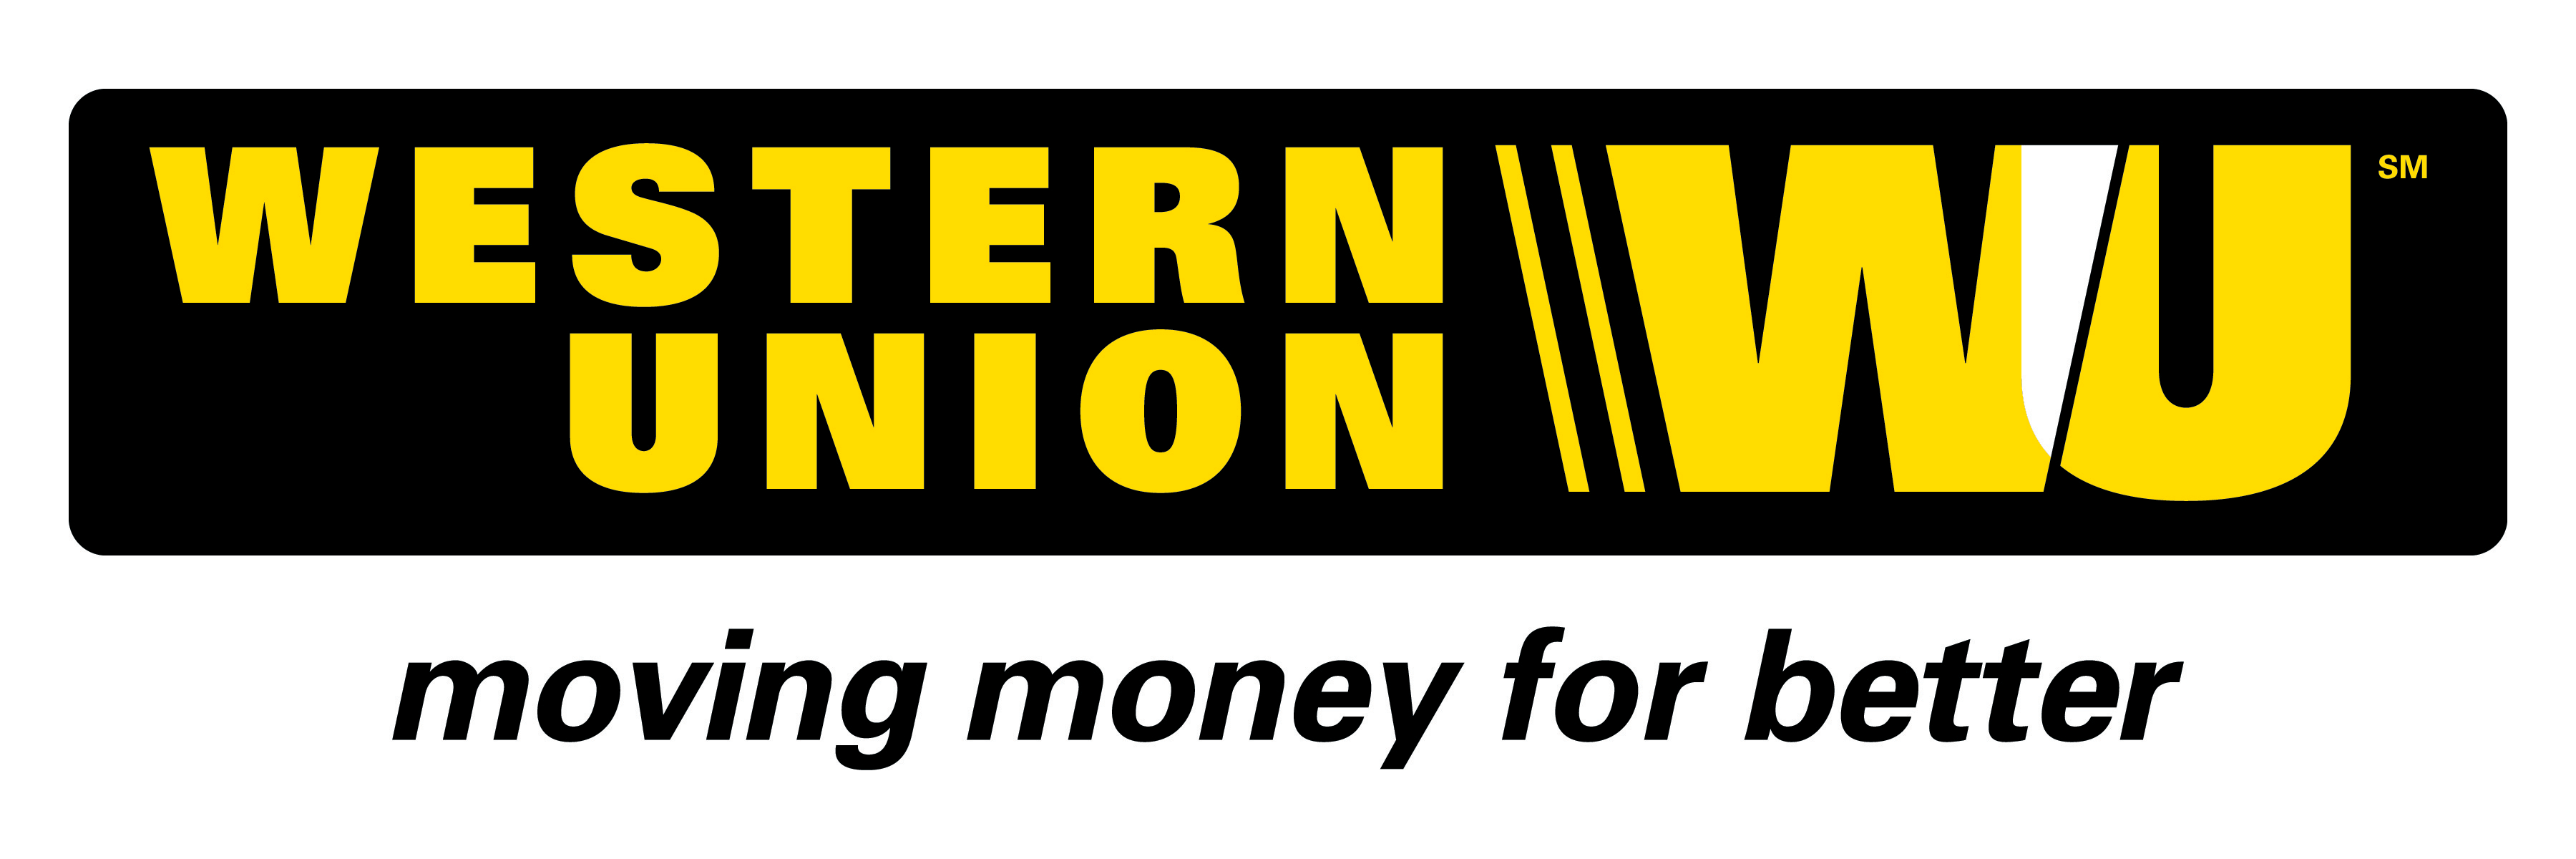 Contact person for any western union reliable quires. Name: Ahmad Samim  Meherzad Mobile:  93 (0) 792990061. Email: wu@bakhtarbank.af - Logo Western Union PNG